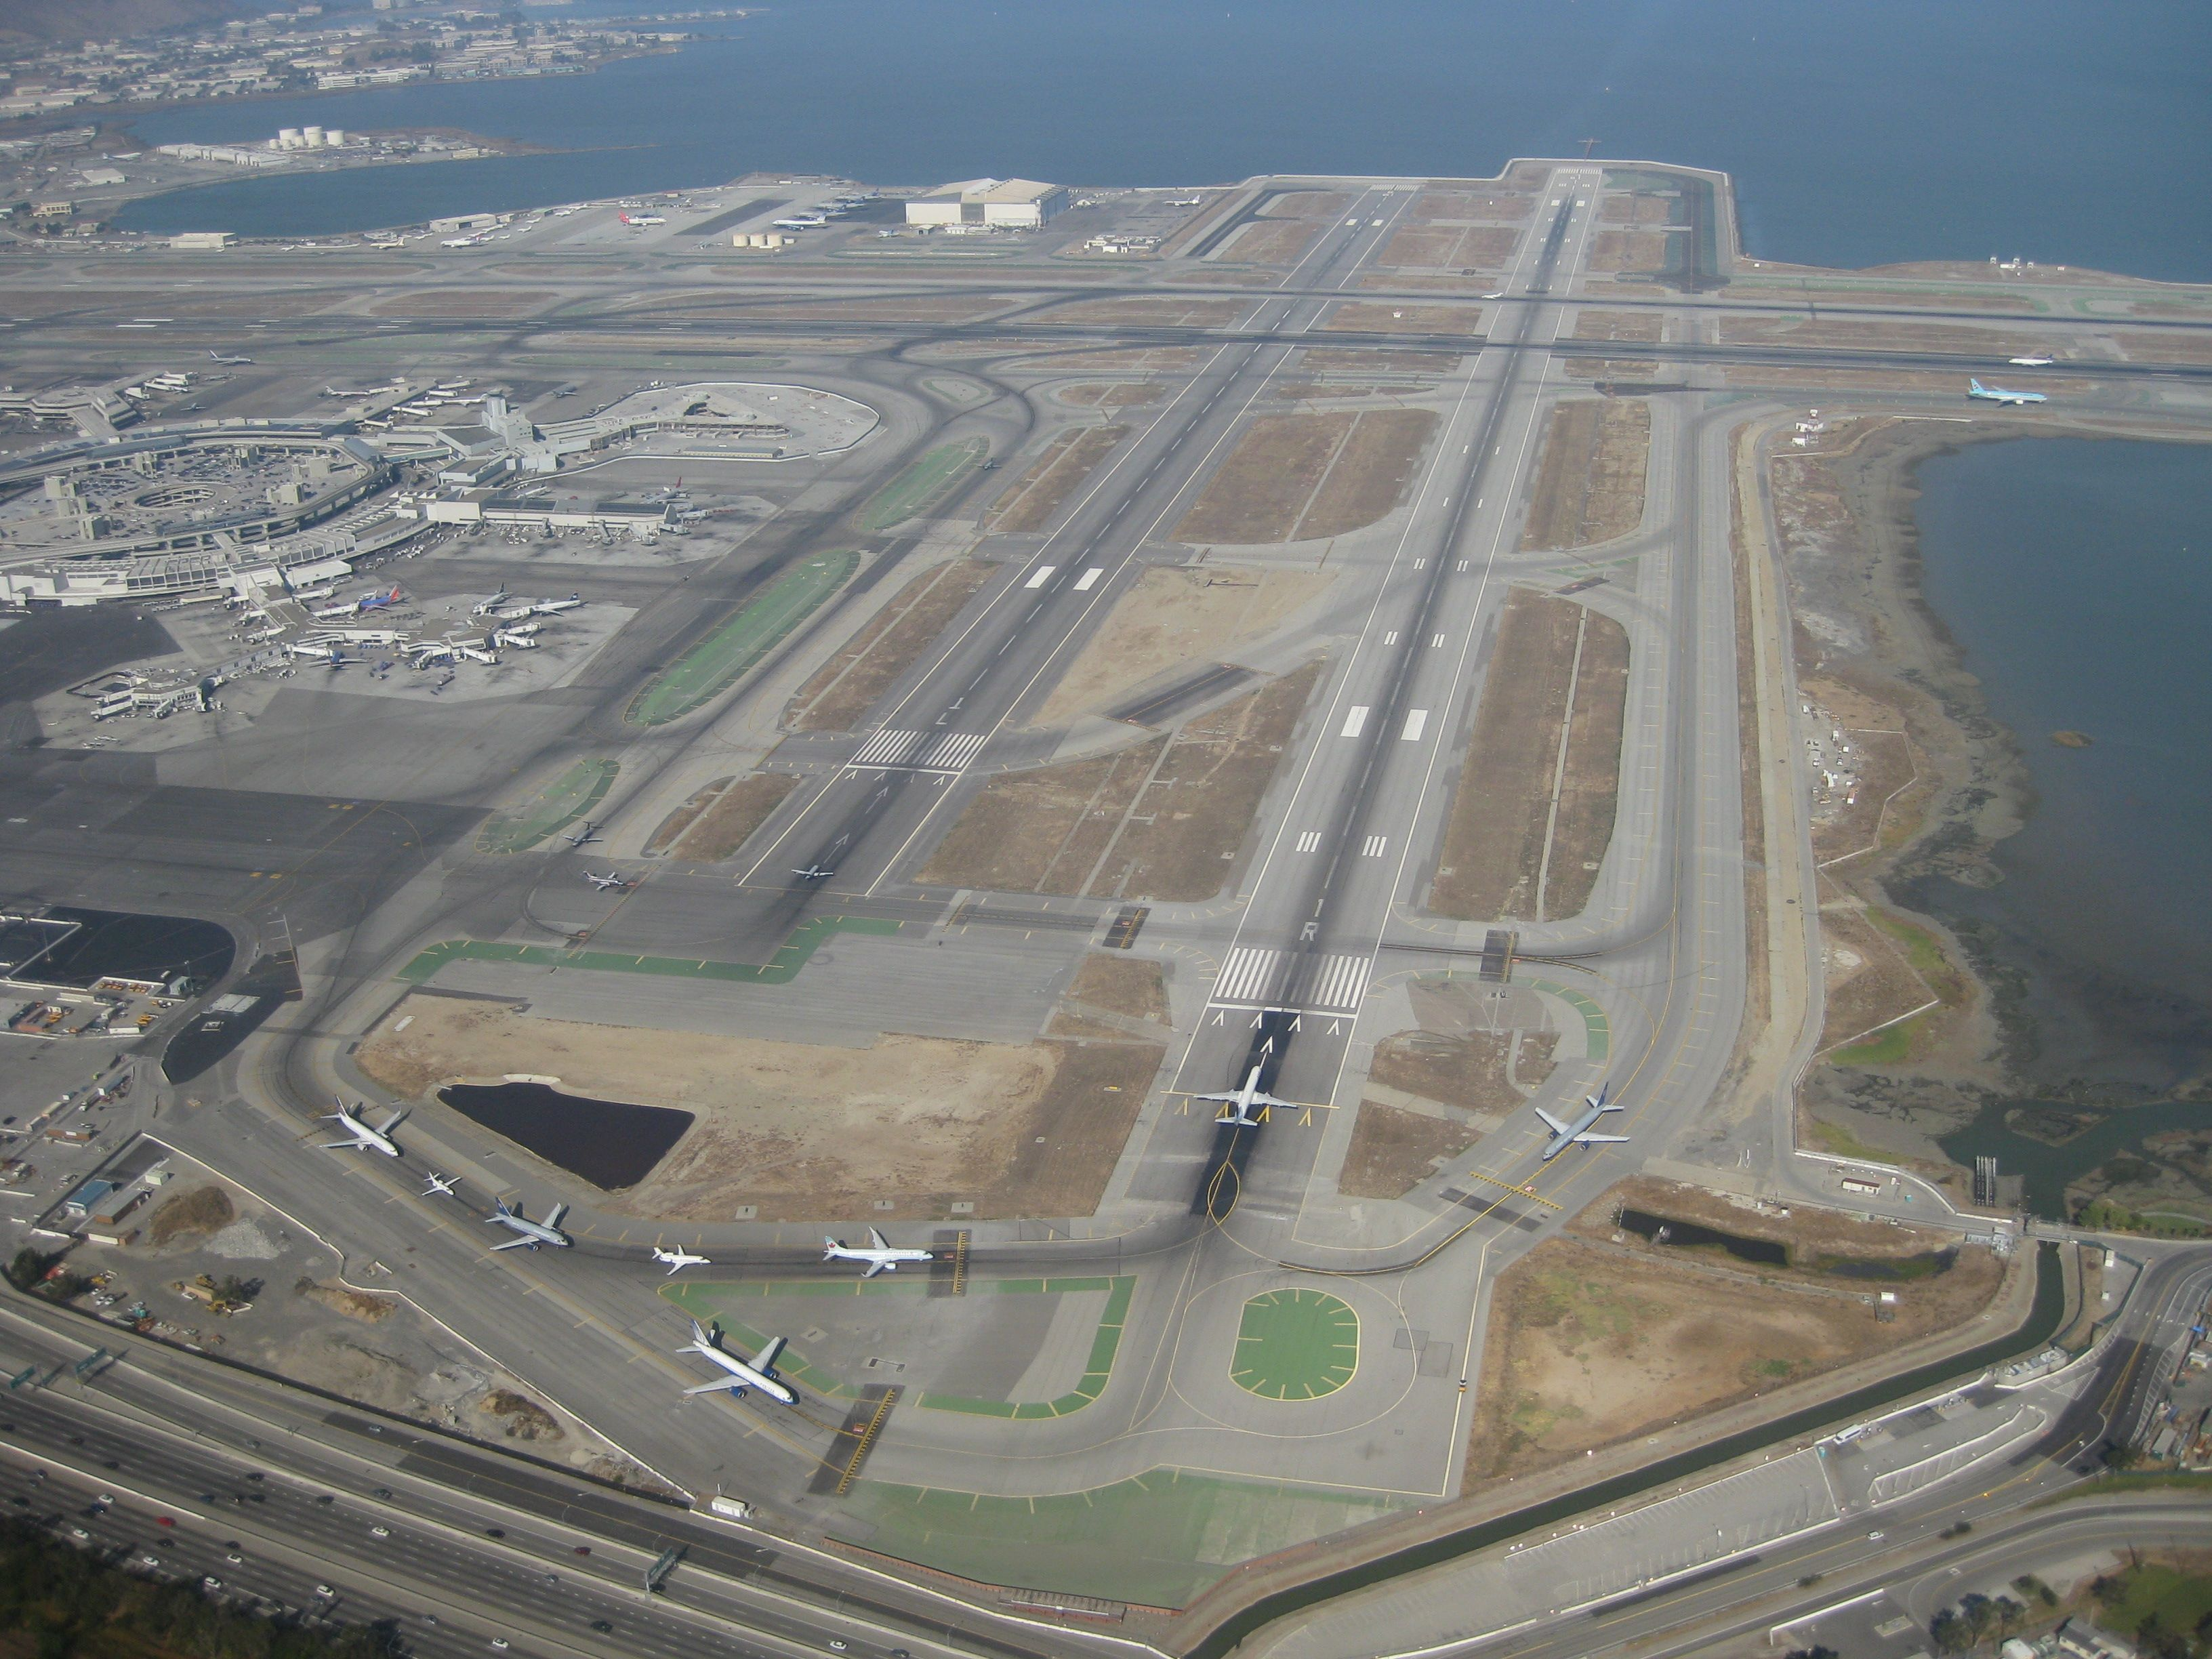 singapore airport runway photos Google Search San